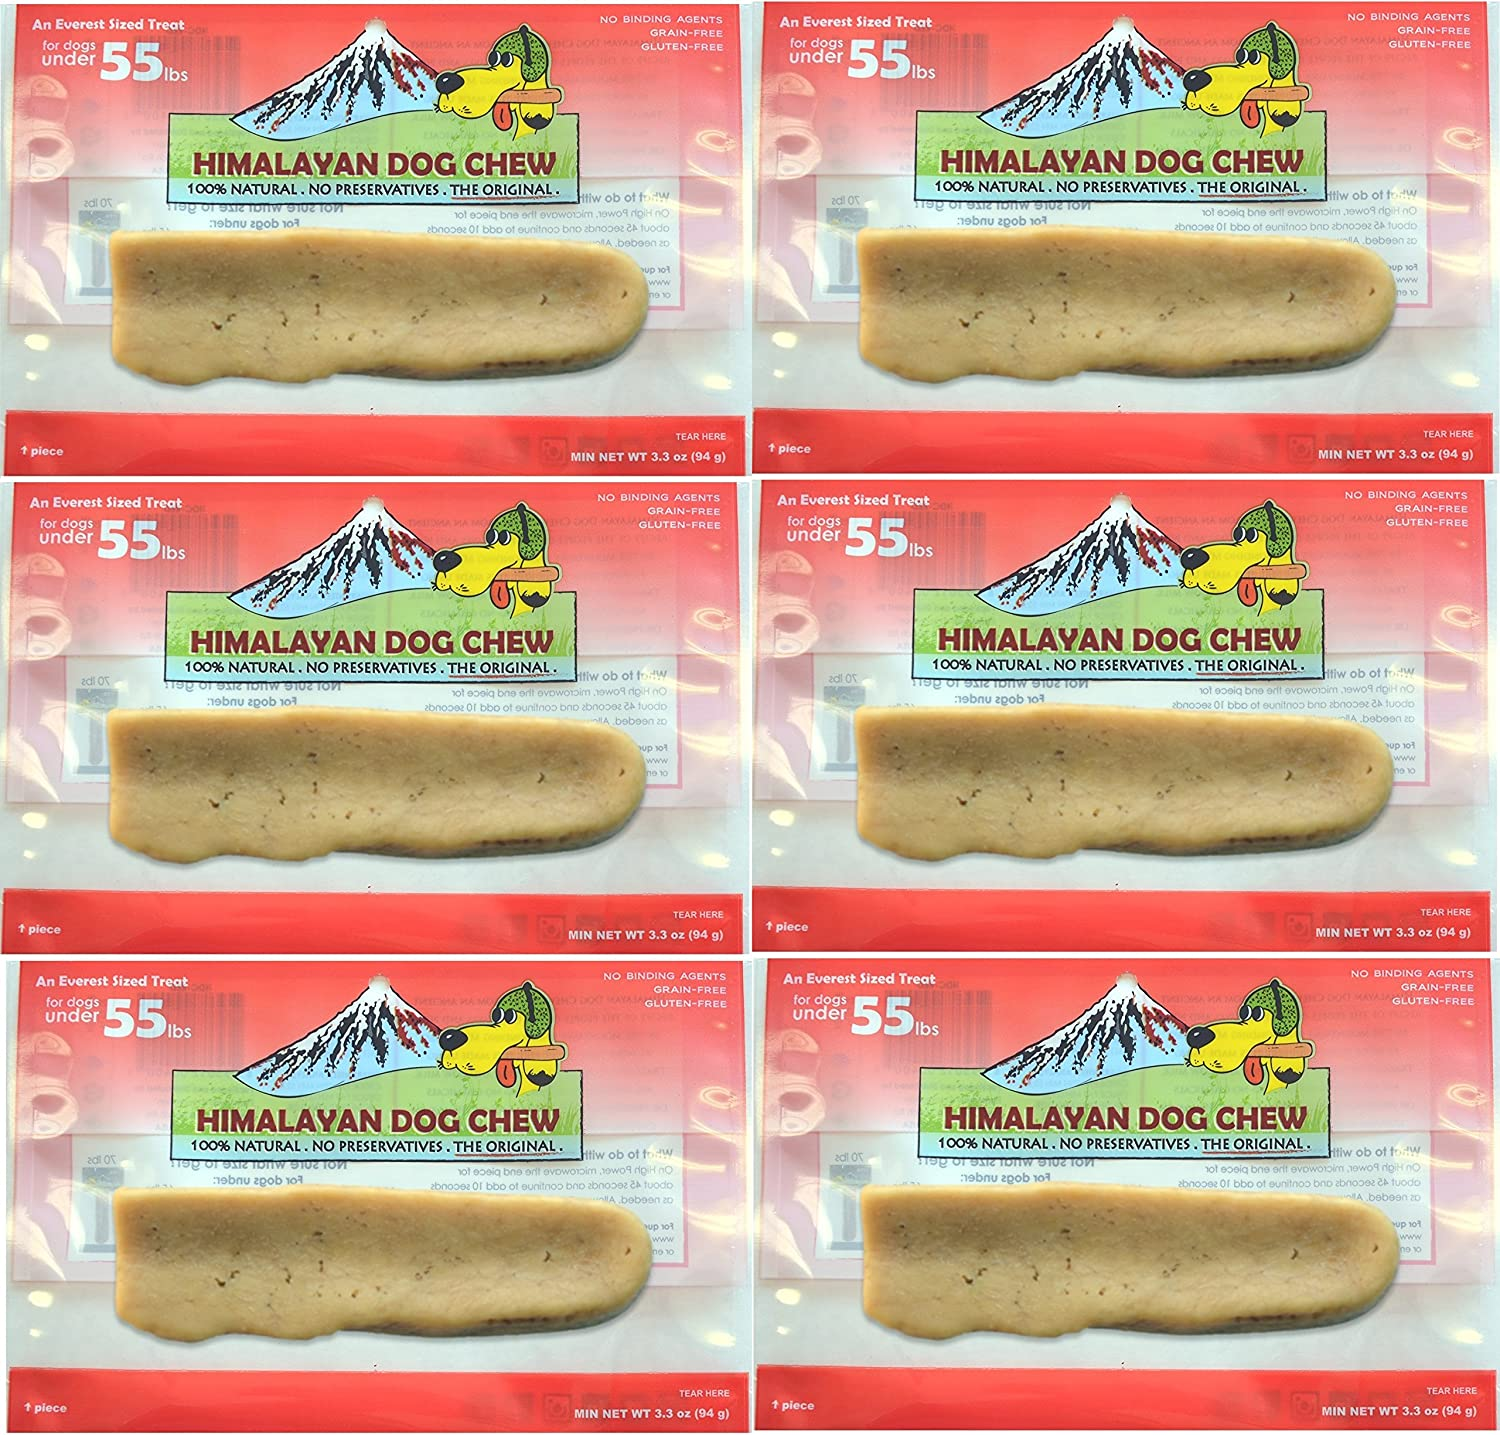 6-Pack Large Himalayan Chews Dog Chew Treat Made of Yak Milk 19.8 Total Oz